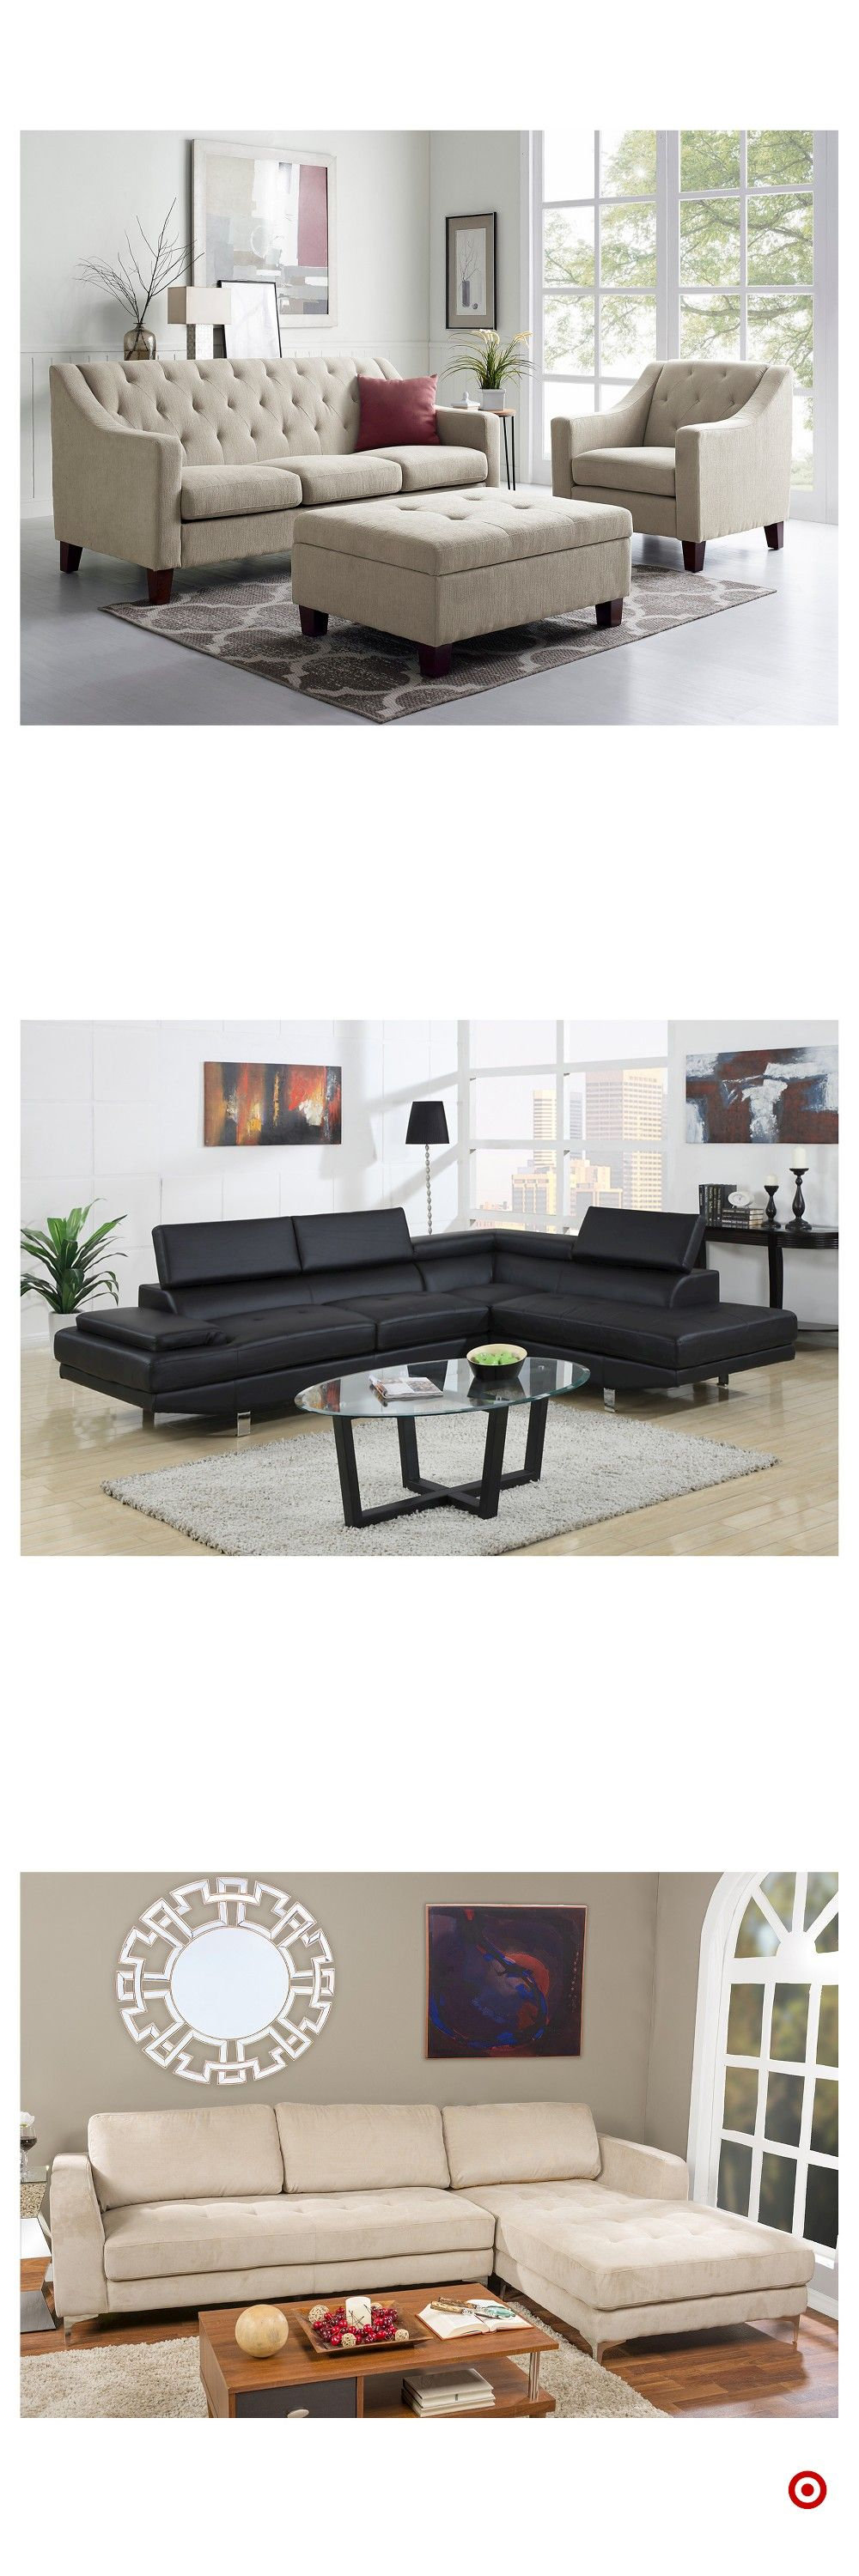 low priced living room sets curtain pics shop target for sectional sofas you will love at great prices free shipping on orders of 35 or same day pick up in store